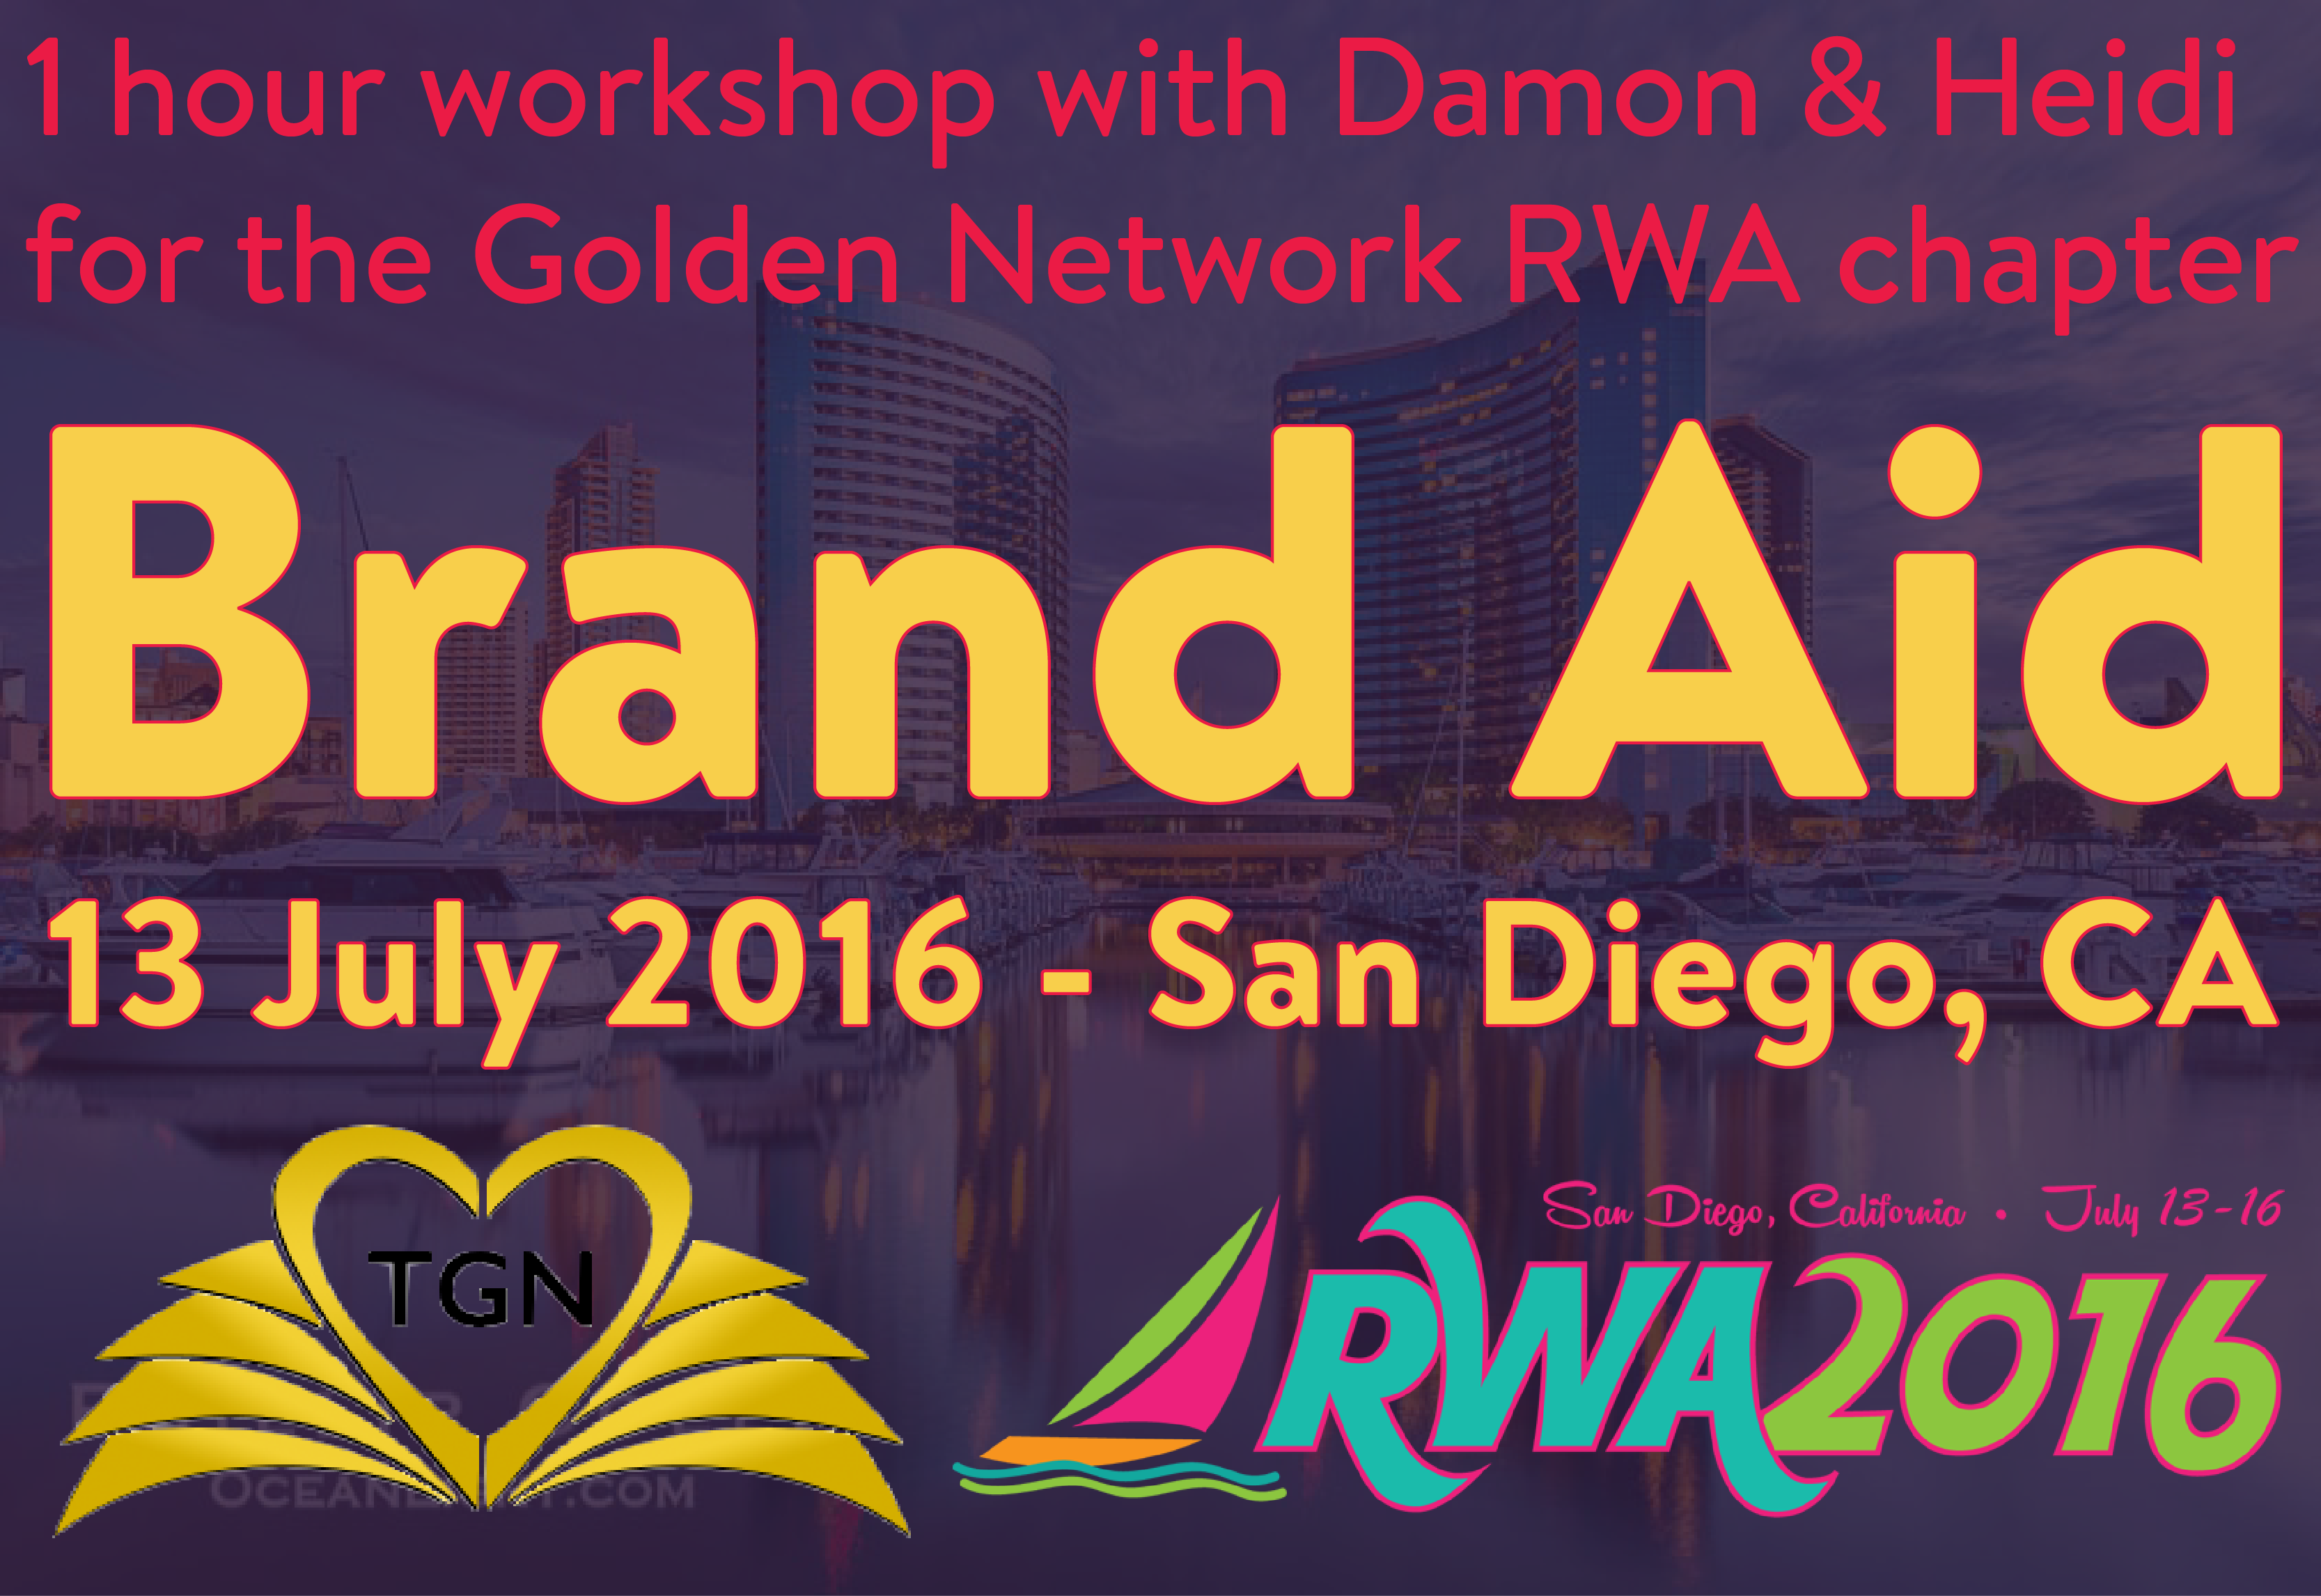 Golden Network @ RWA National Conference 2016 (San Diego, CA)